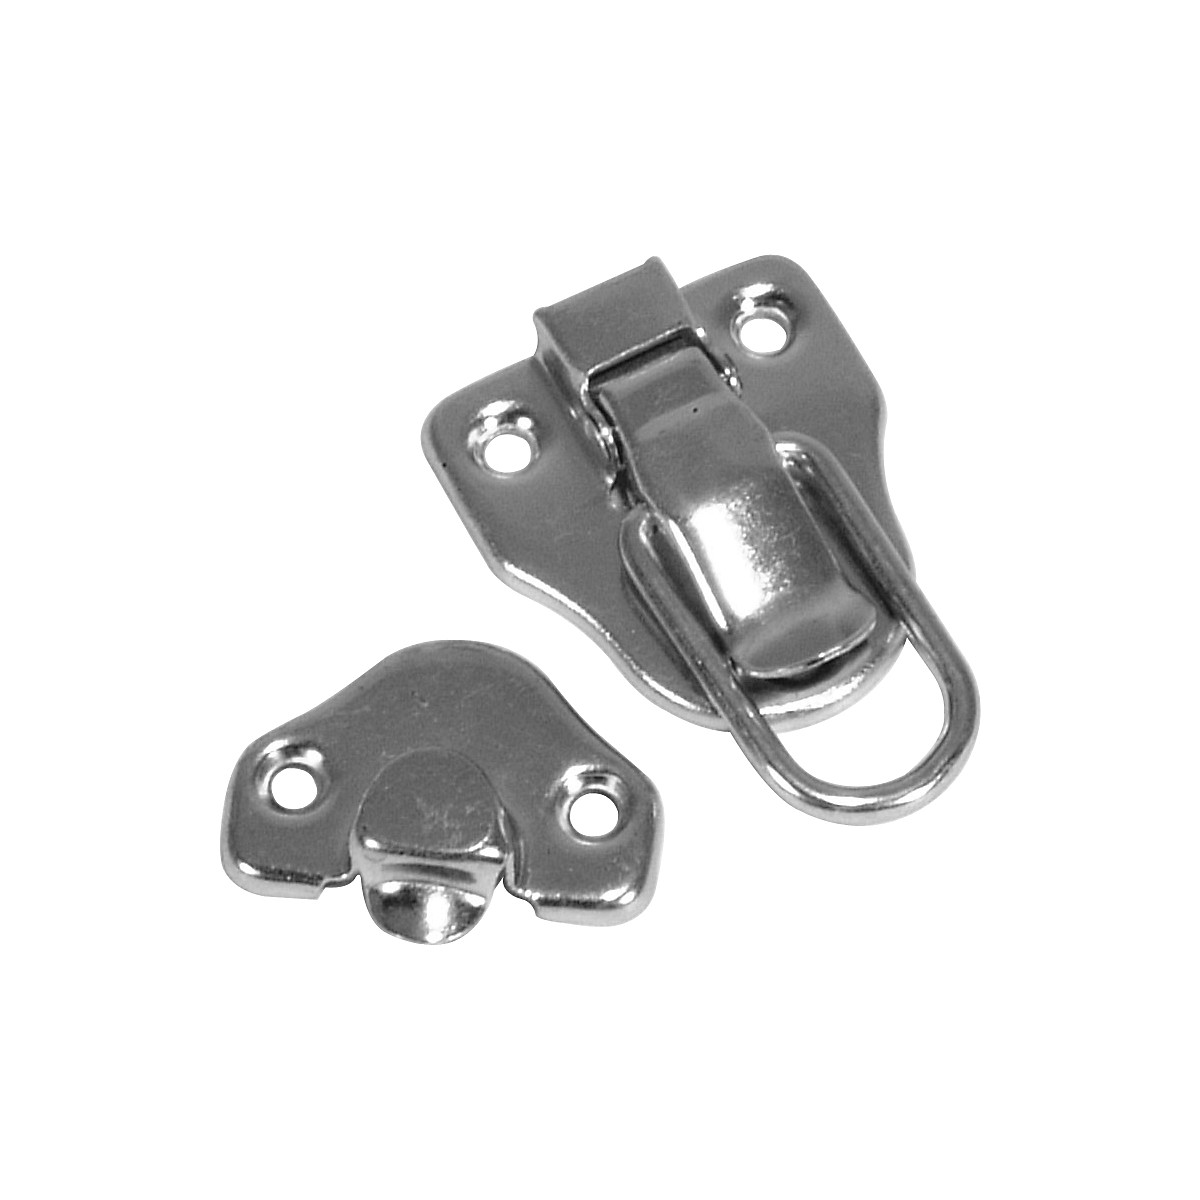 Ferree's Tools Drawbolt Flush Latch Set